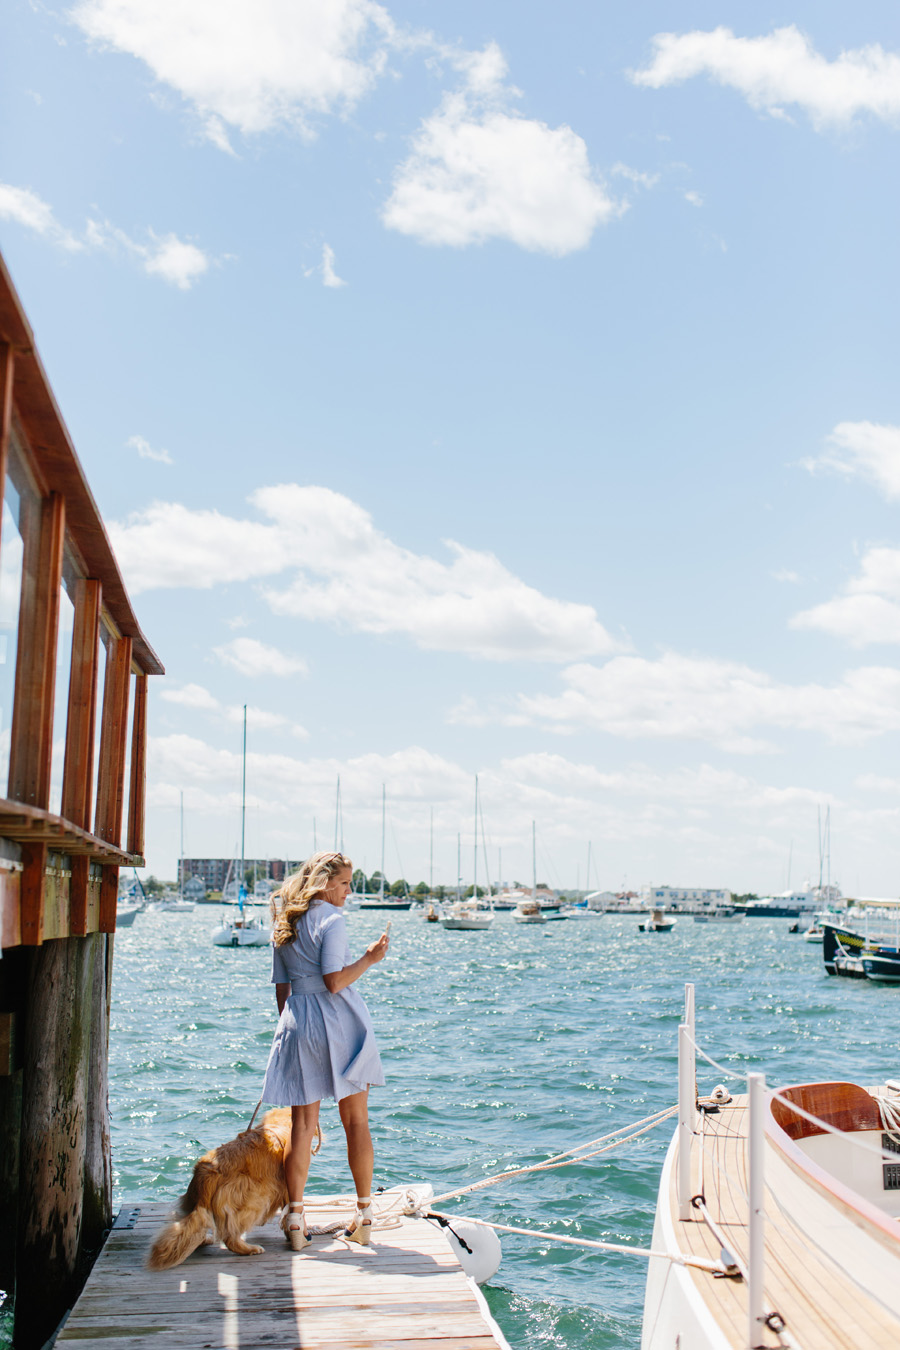 Newport Travel Guide from Abby Capalbo New England Blogger Photography: Erin McGinn